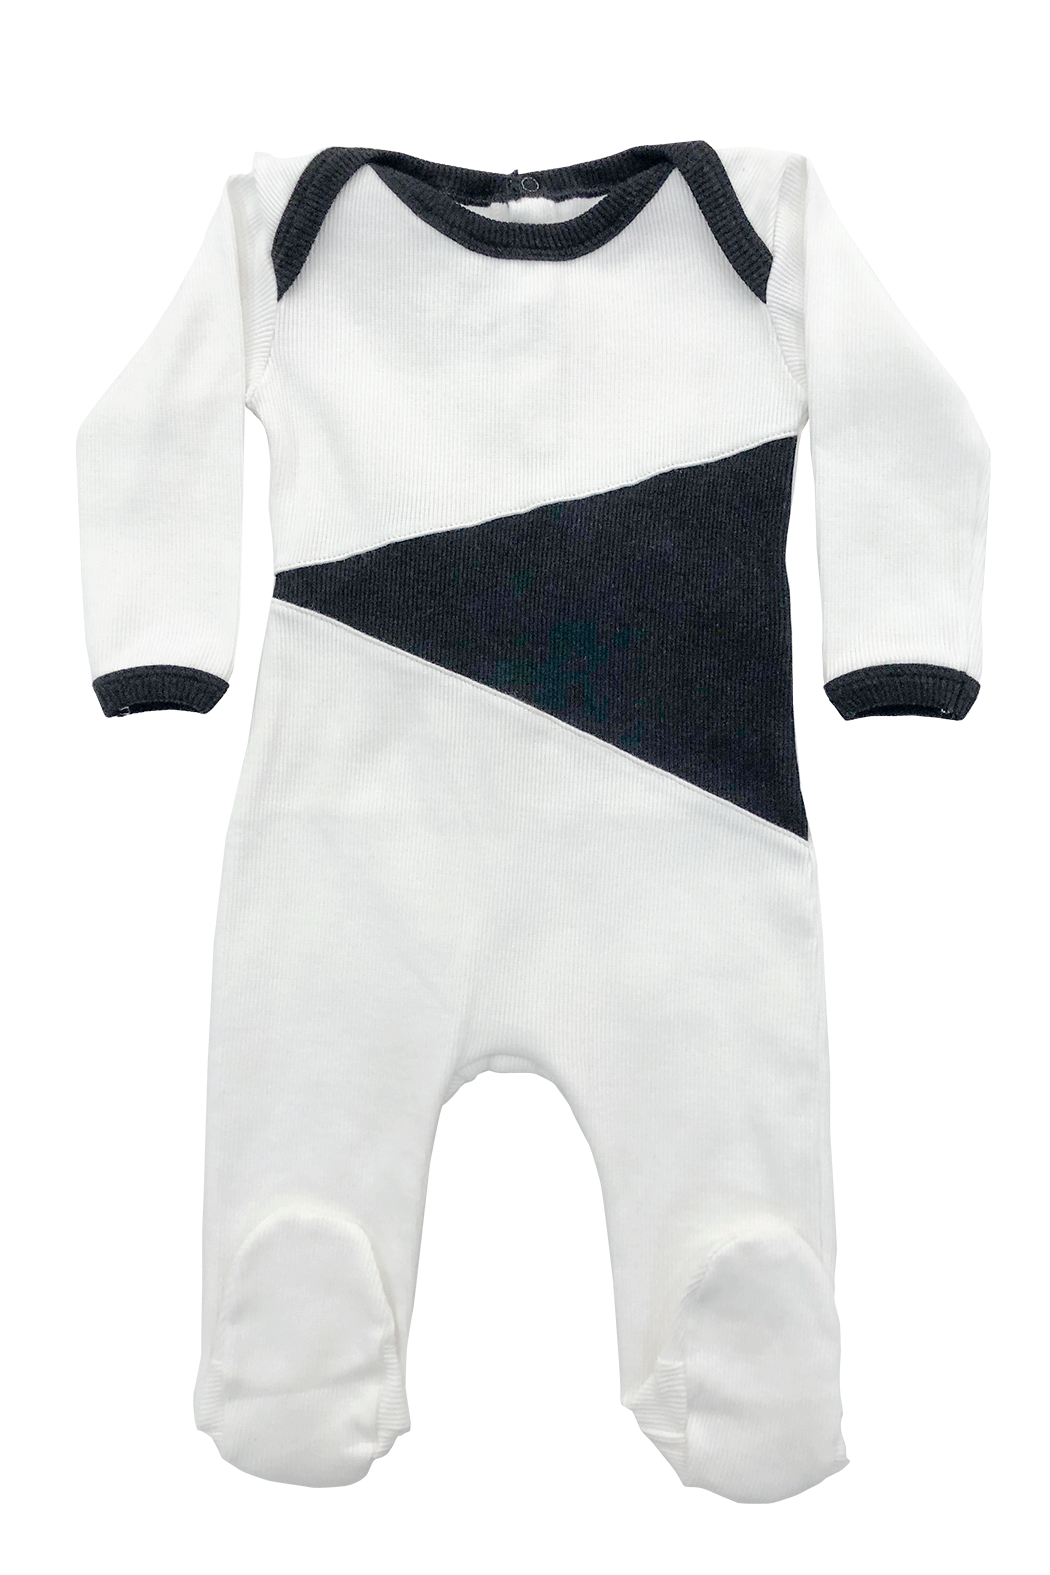 Cotton Pompom Peruvian Cotton Triangle Infant Ribbed Footie - Perfect Baby Gift - Front Cropped Image